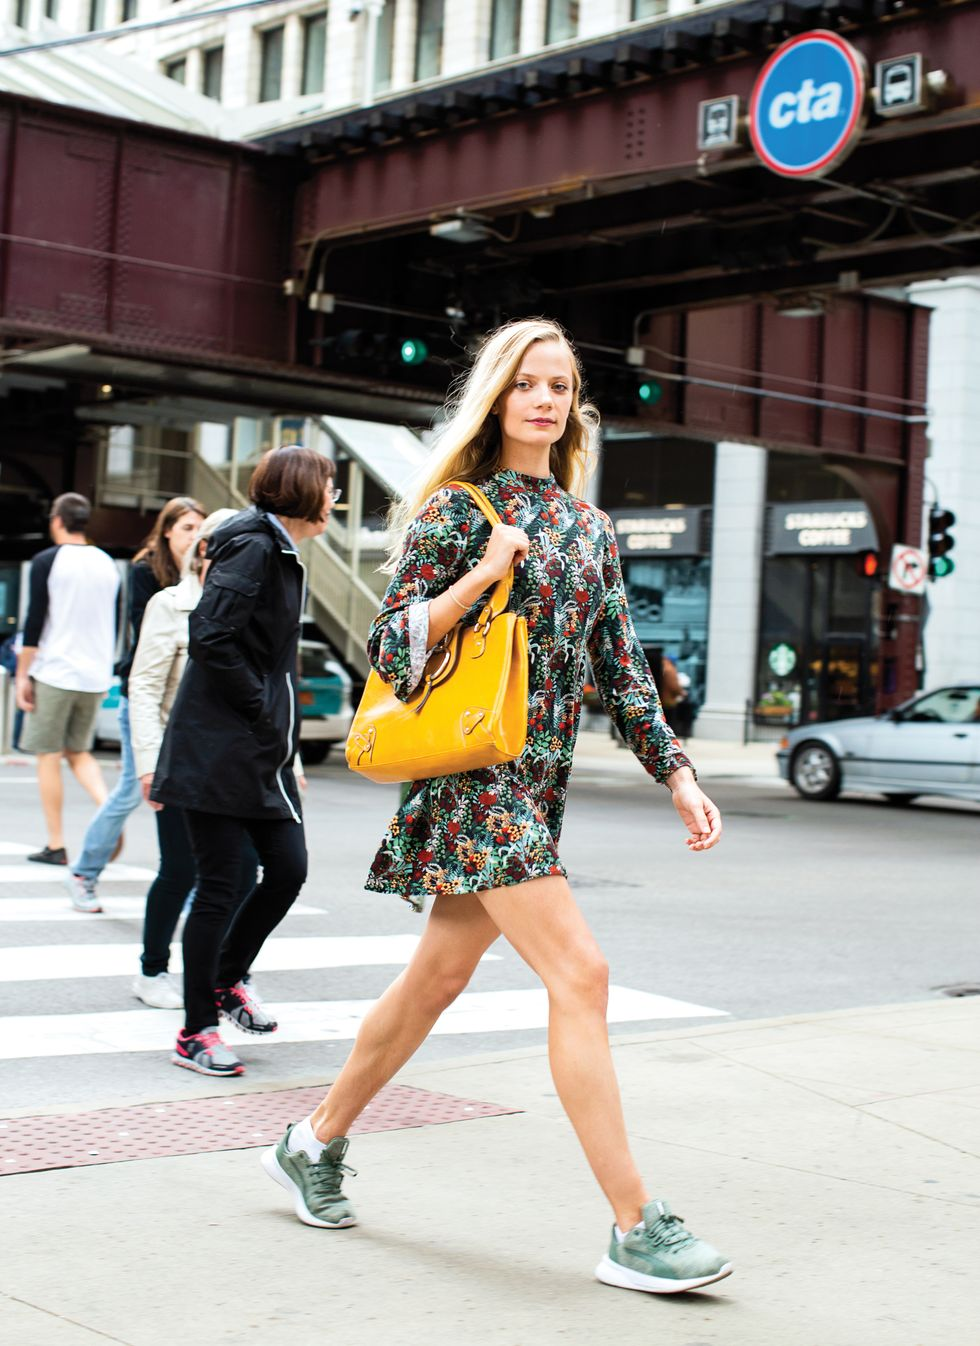 Woman with long blonde hair wearing green sneakers, a floral dress and carrying a large yellow purse walks with purpose on the Chicago streets pass a CTA station.